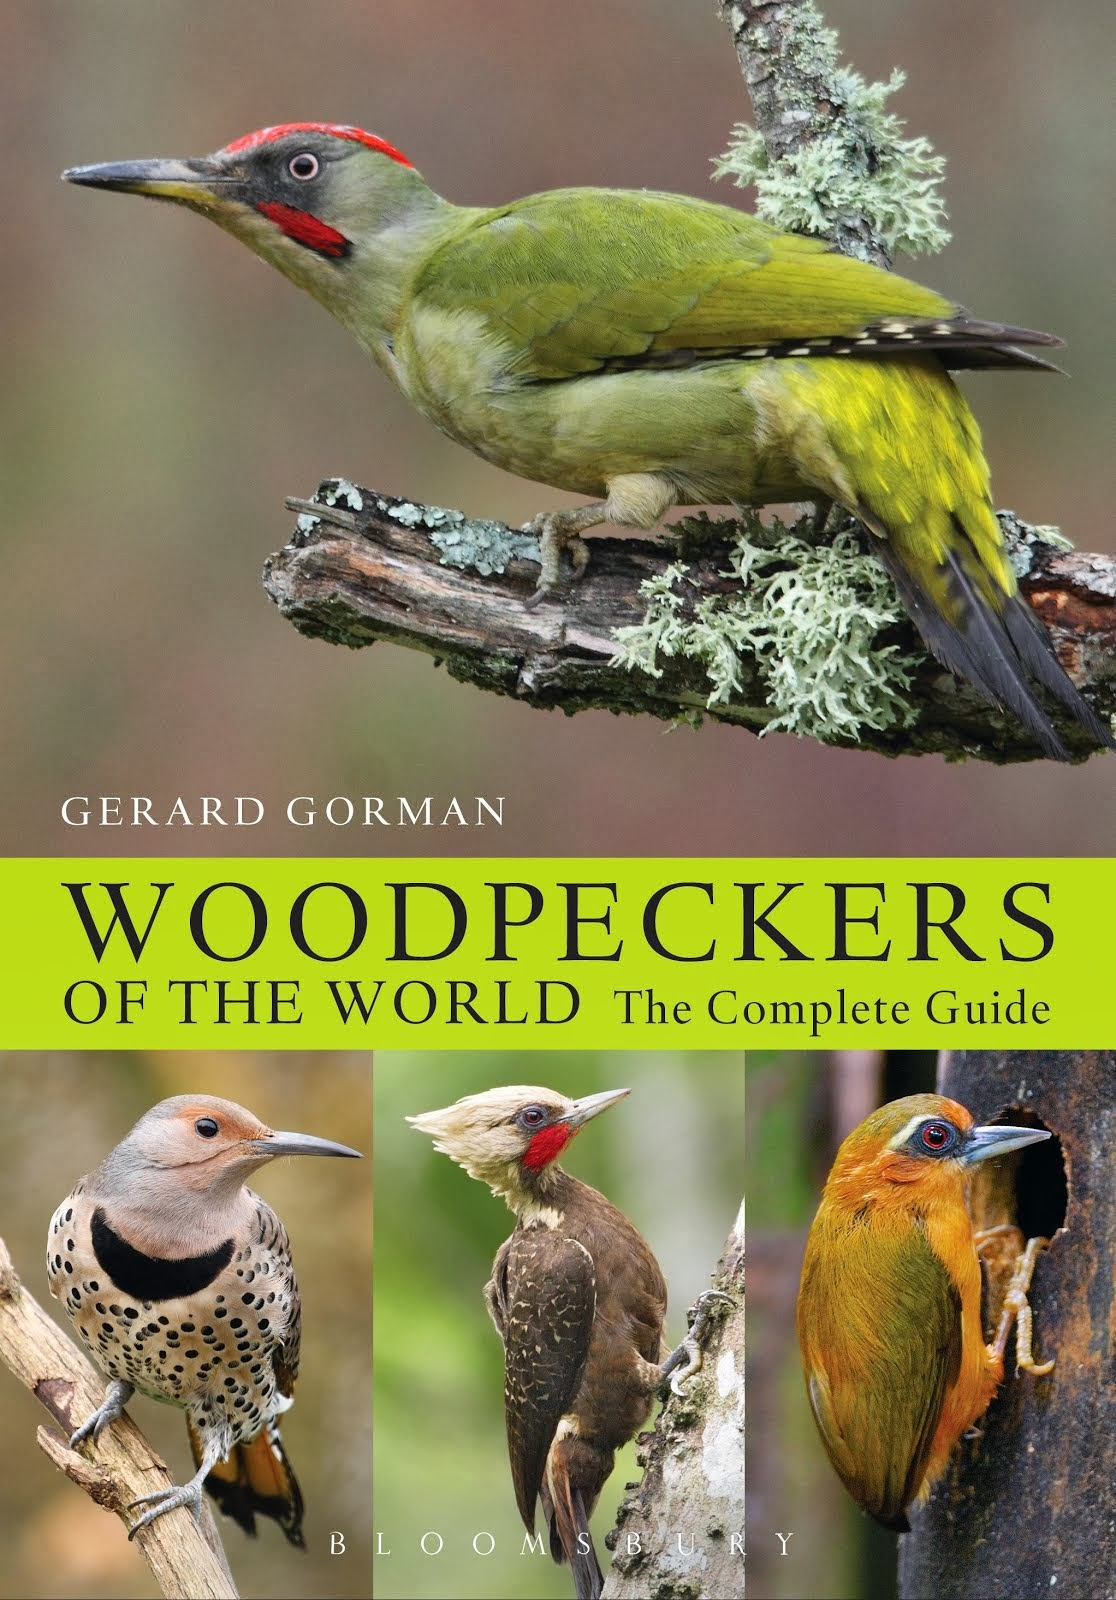 Woodpeckers of the World - The Complete Guide